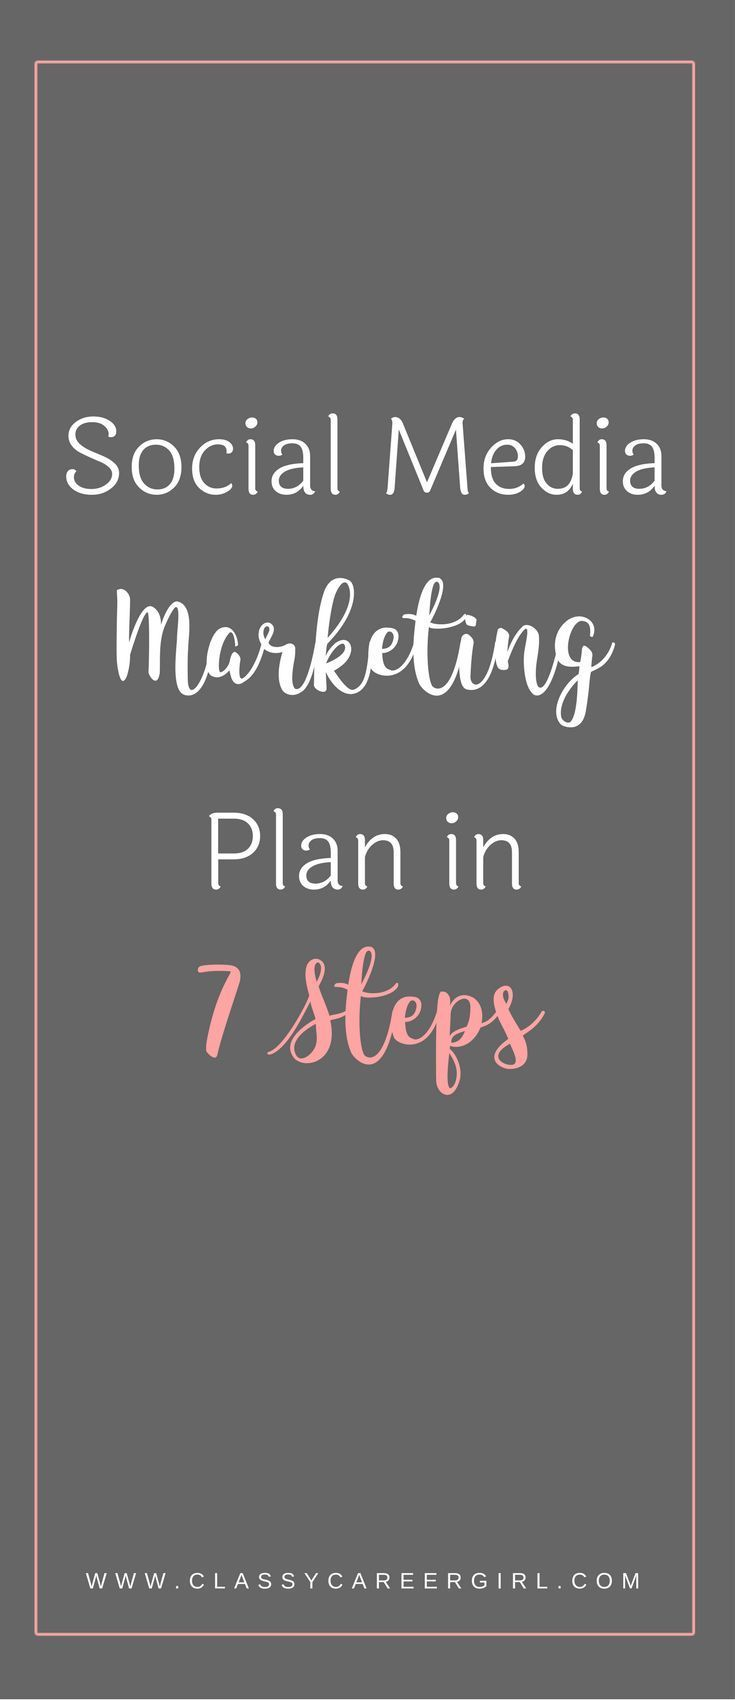 The key to creating your social media marketing plan is to remember that it's not justaboutposting content everywhere, but instead to be strategic